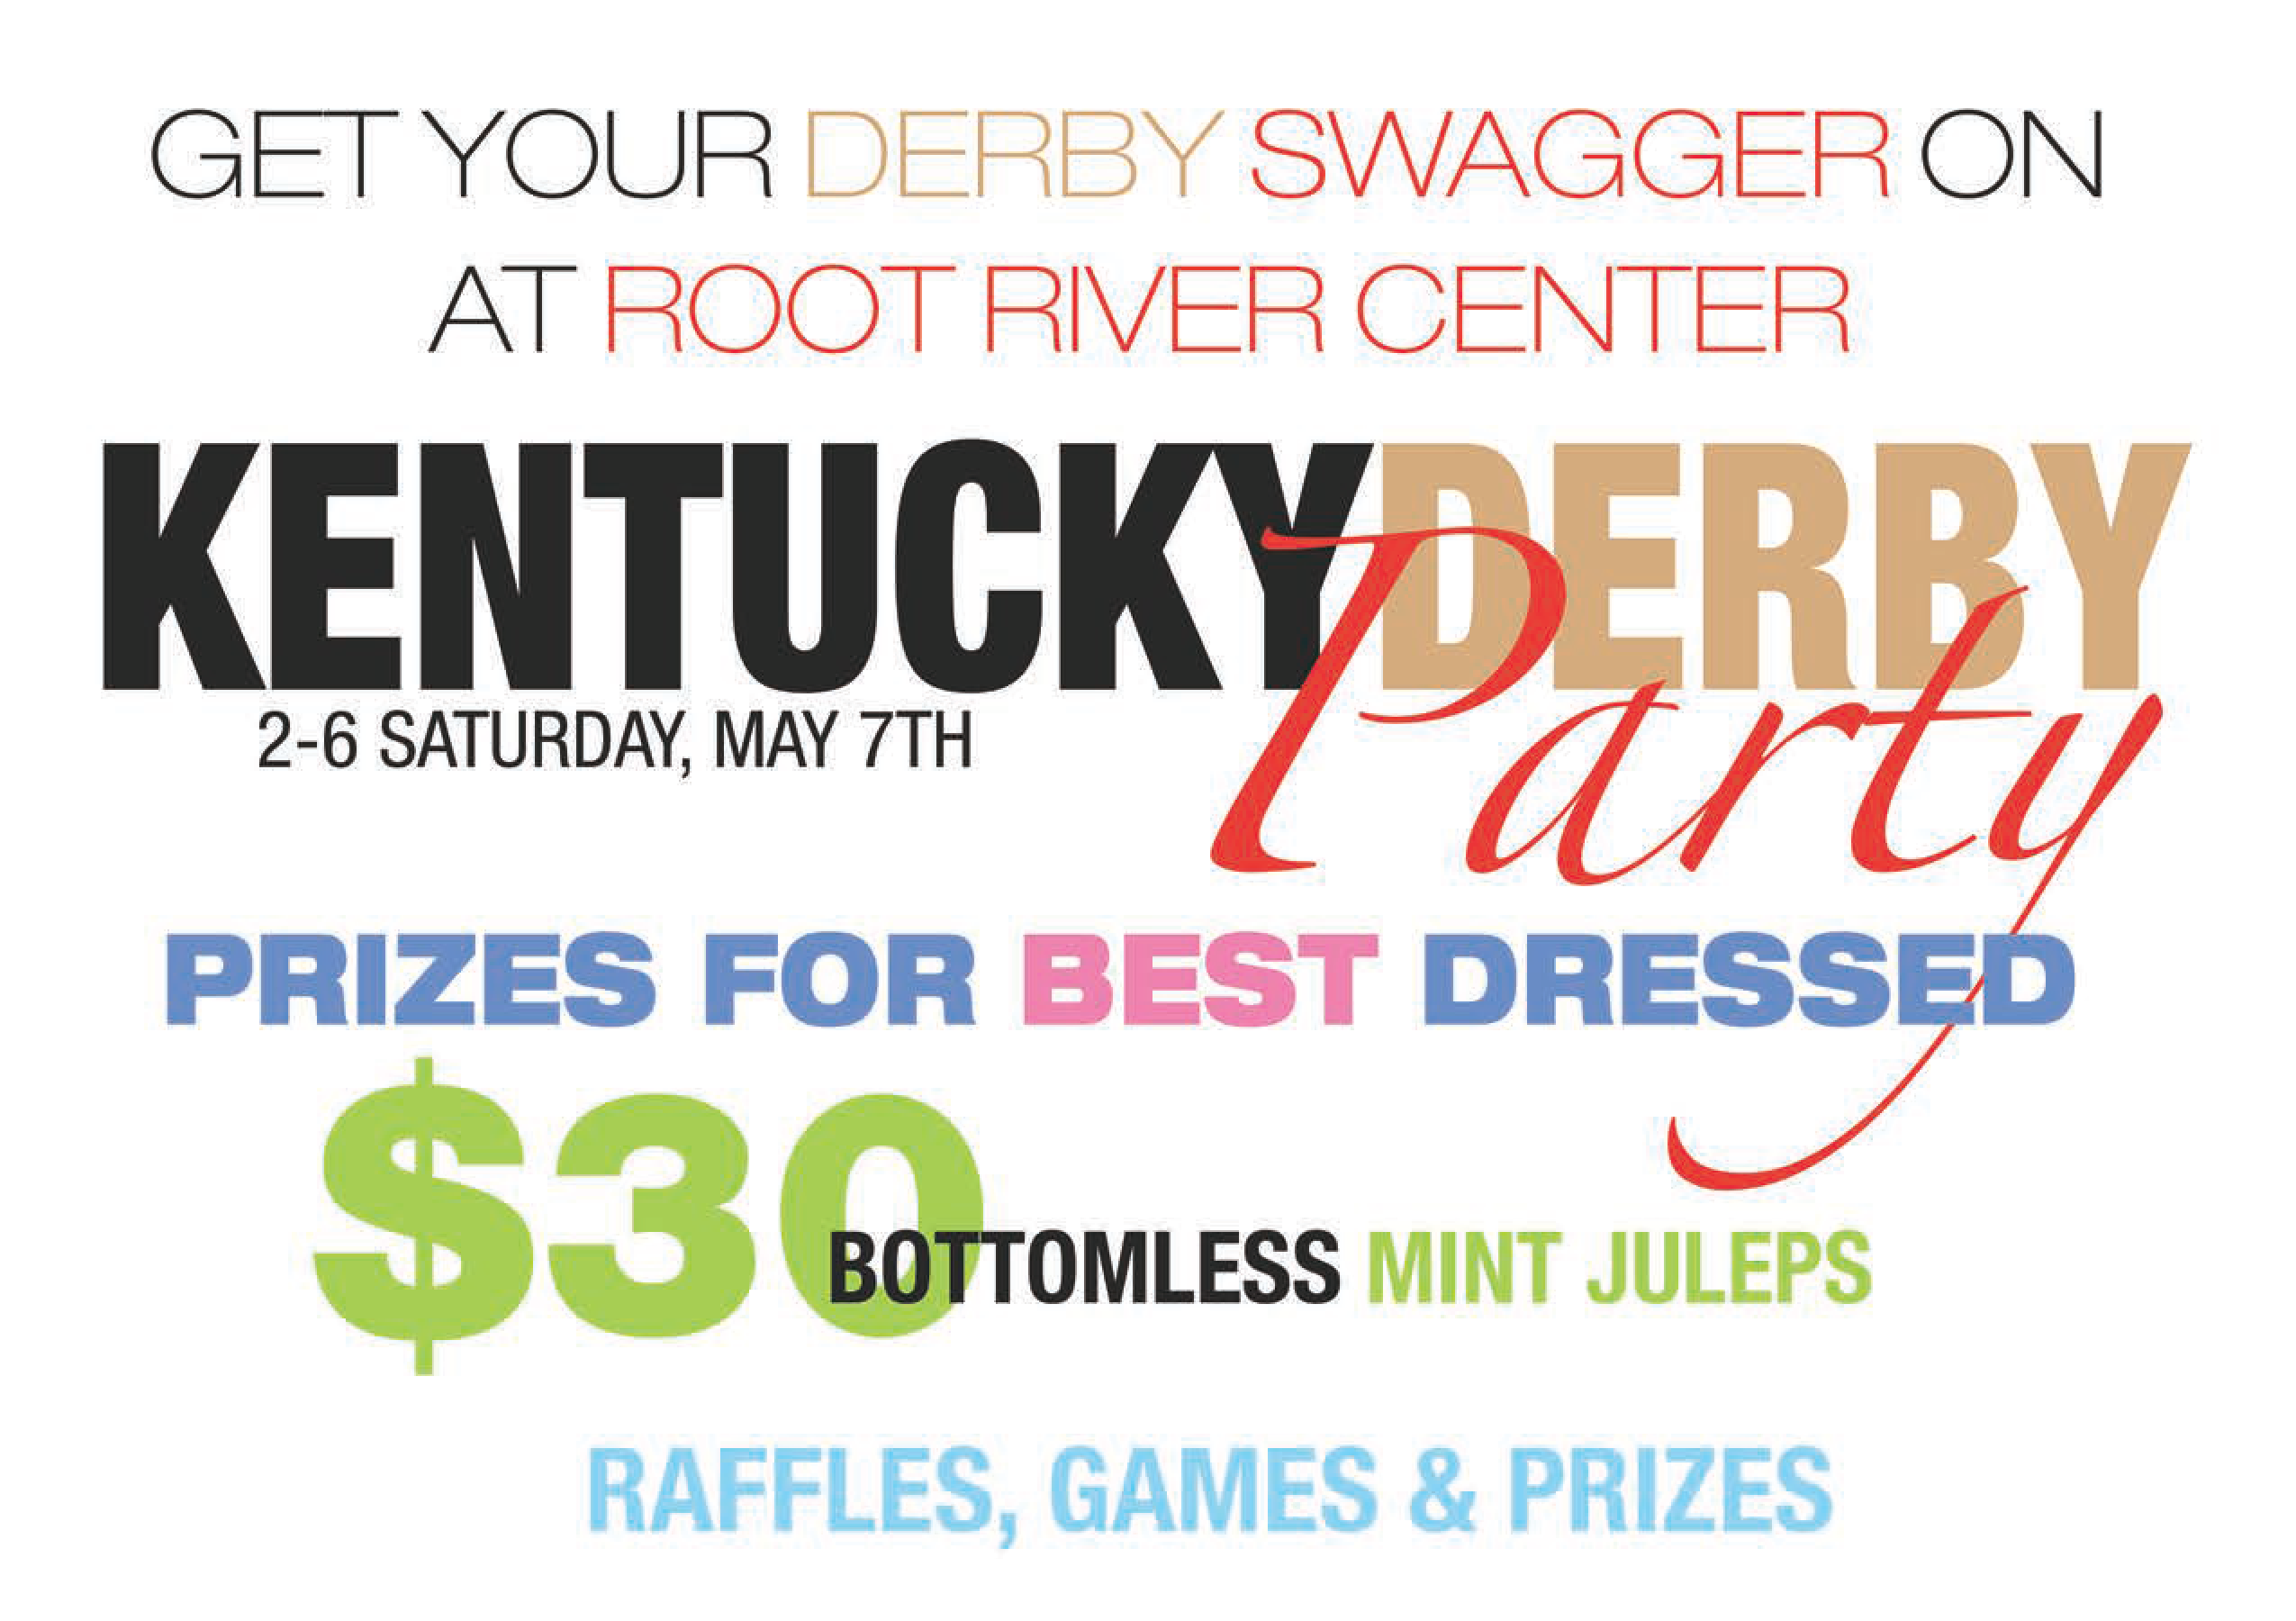 Kentucky Derby Party at Root River Center